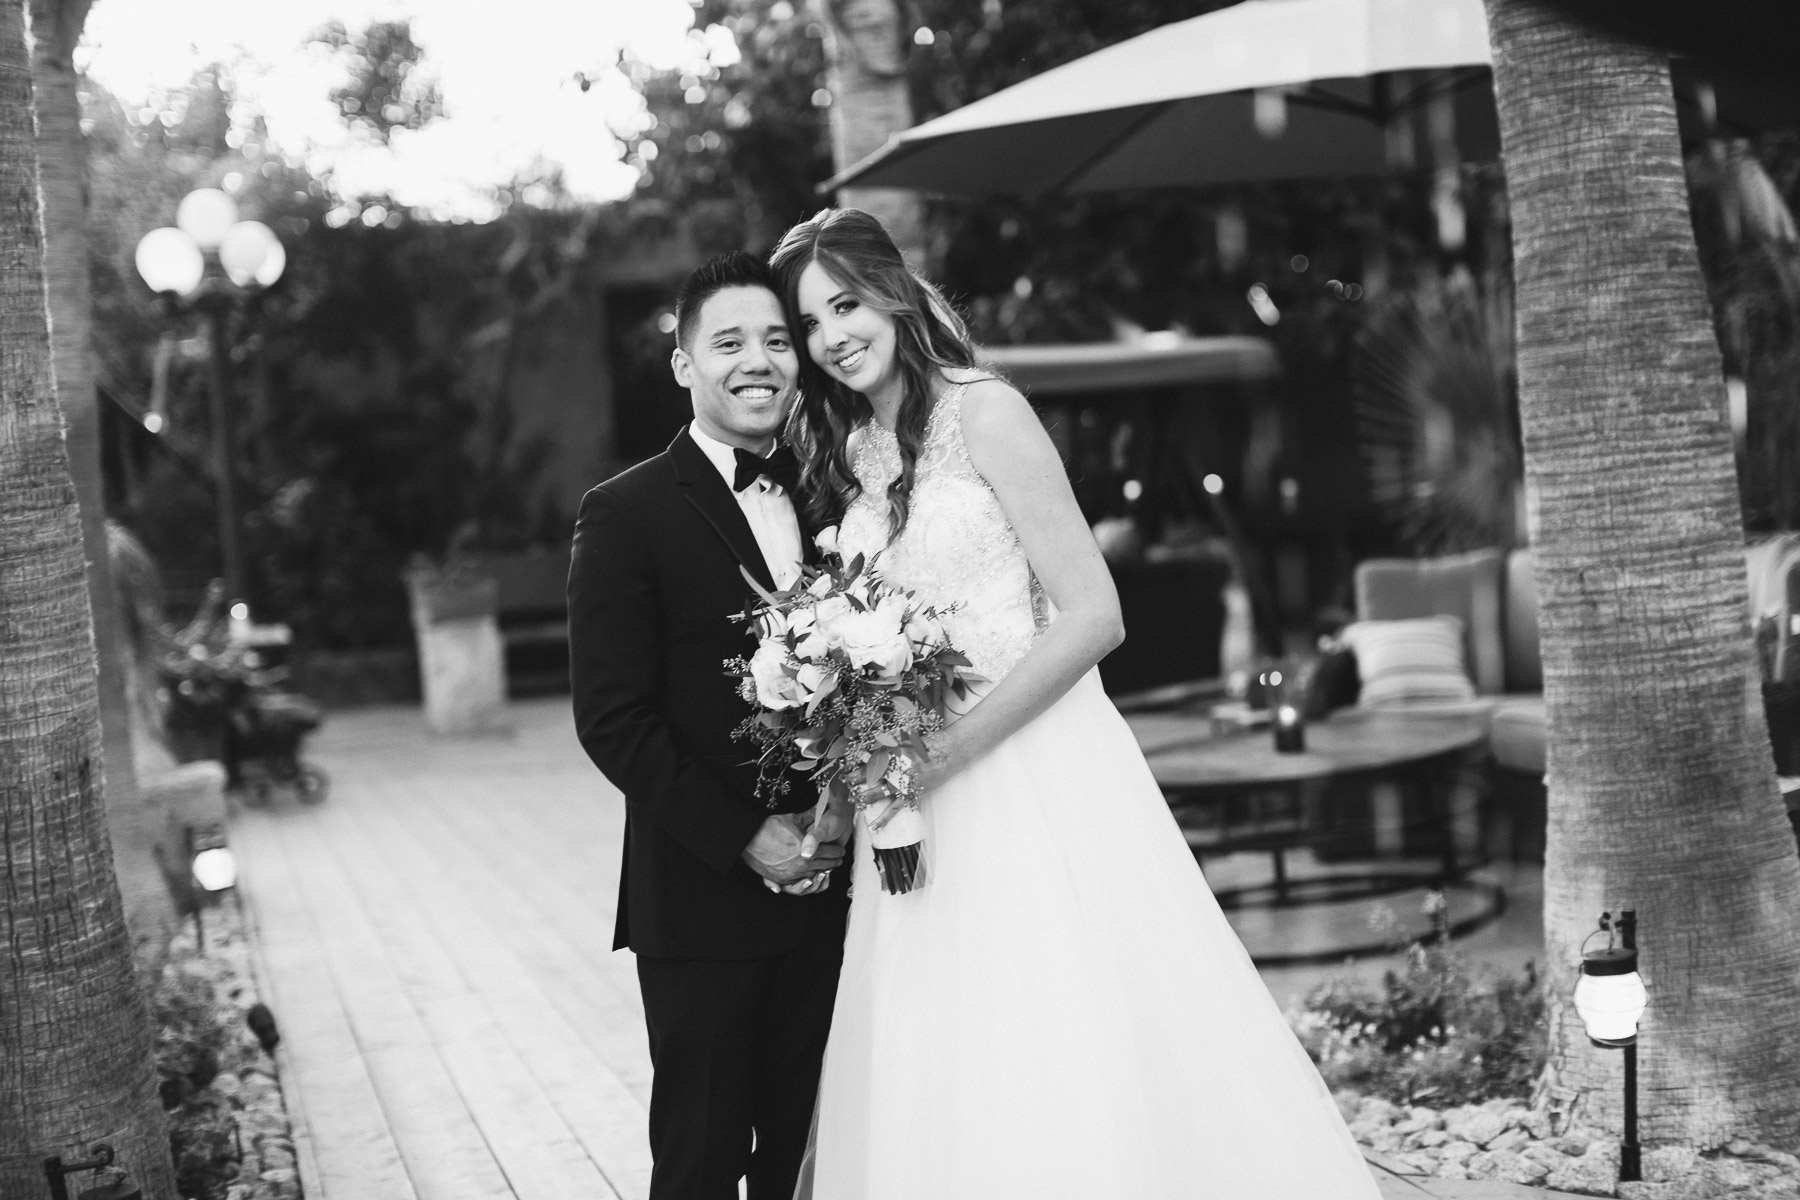 161112-Luxium-Weddings-Arizona-Jon-Madison-Boojum-Tree-First-Look-038.jpg